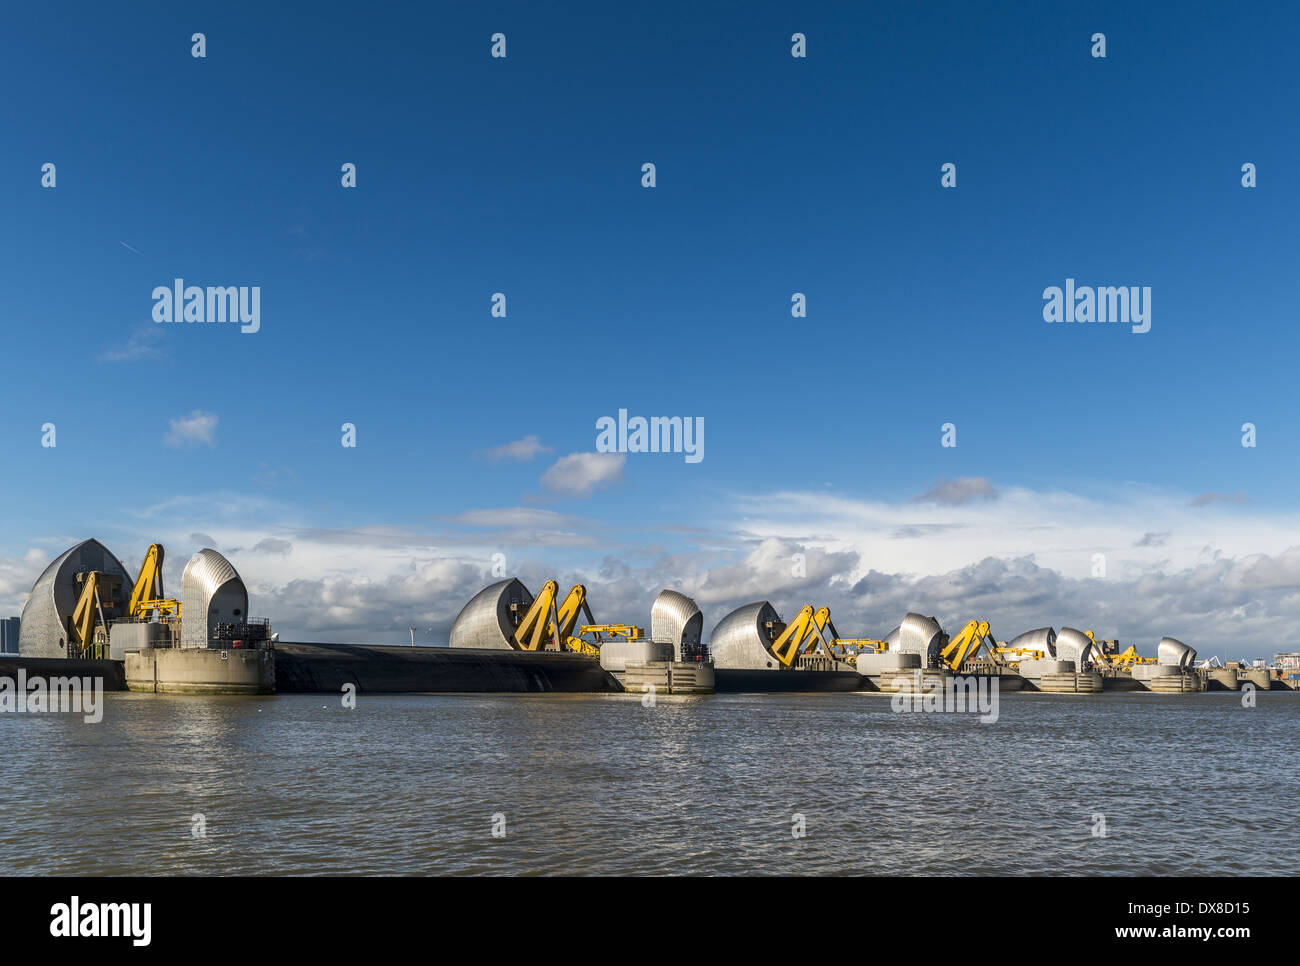 Shown here in the raised position, the Thames Barrier is located downstream of central London, United Kingdom, operational - Stock Image